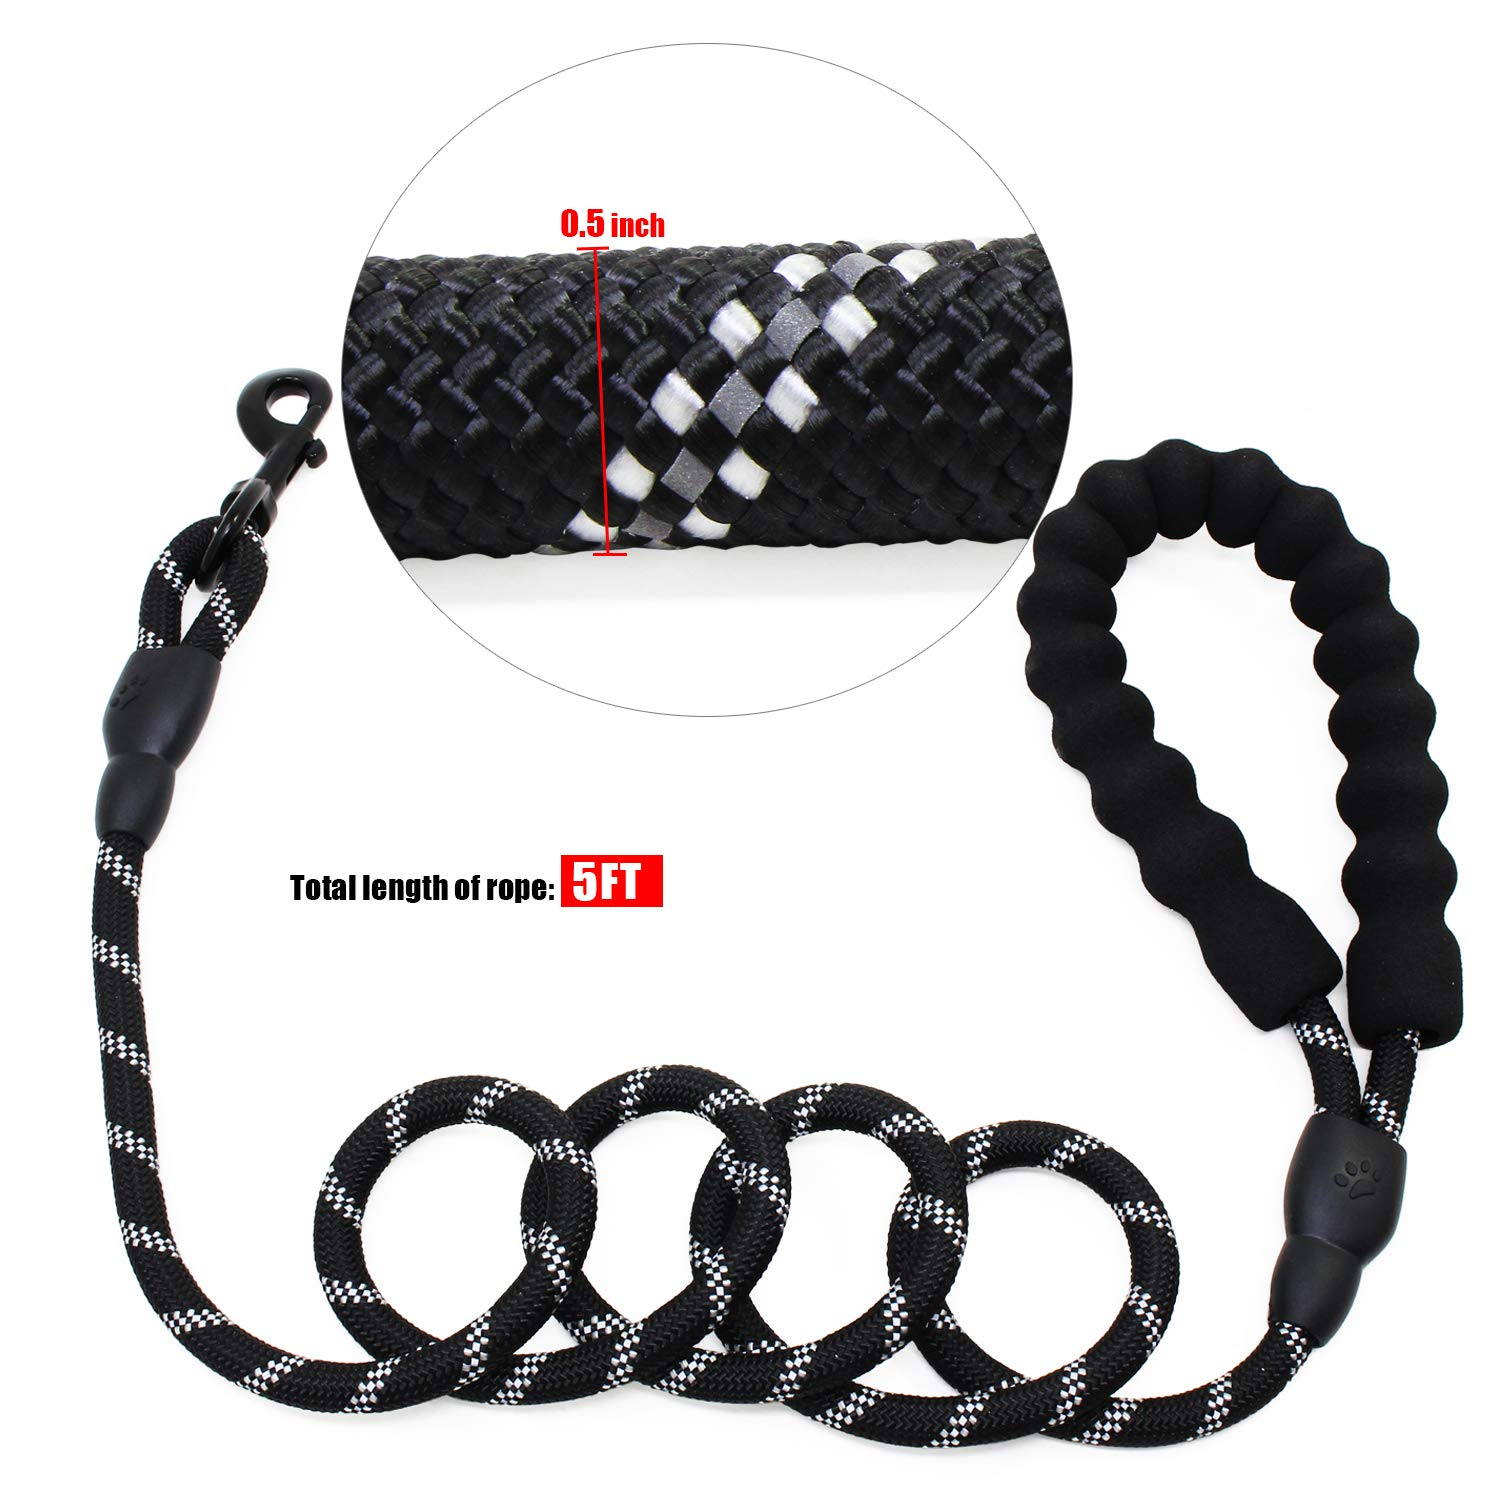 Medium and Large Dogs abcGoodefg 5 FT Strong Heavy Duty Dog Leash Lead with Soft Padded Handle and Highly Reflective Threads Light Up Dog Leash for Small